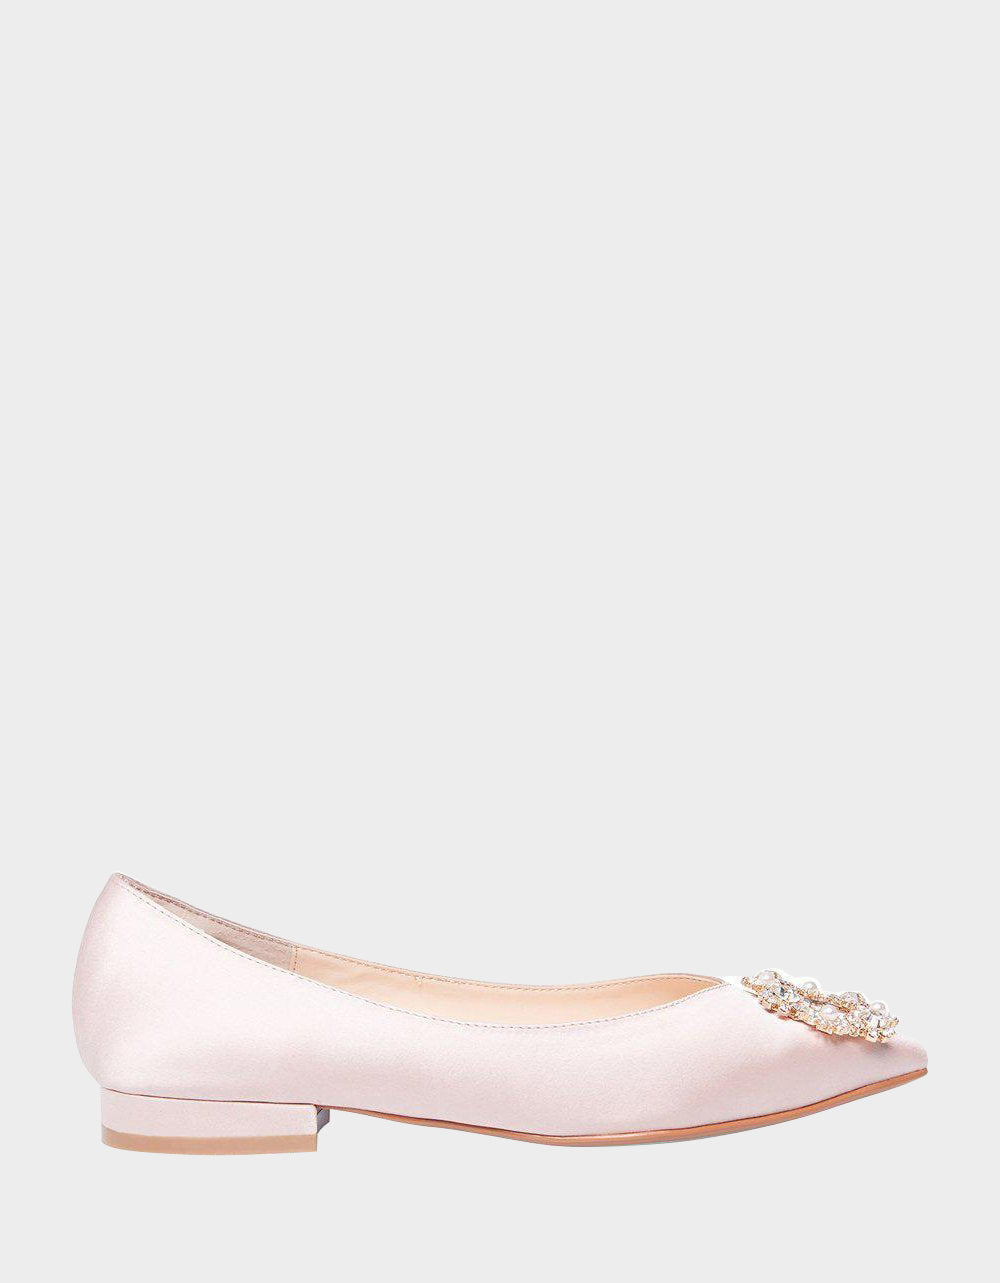 SB-DIANA NUDE SATIN - SHOES - Betsey Johnson